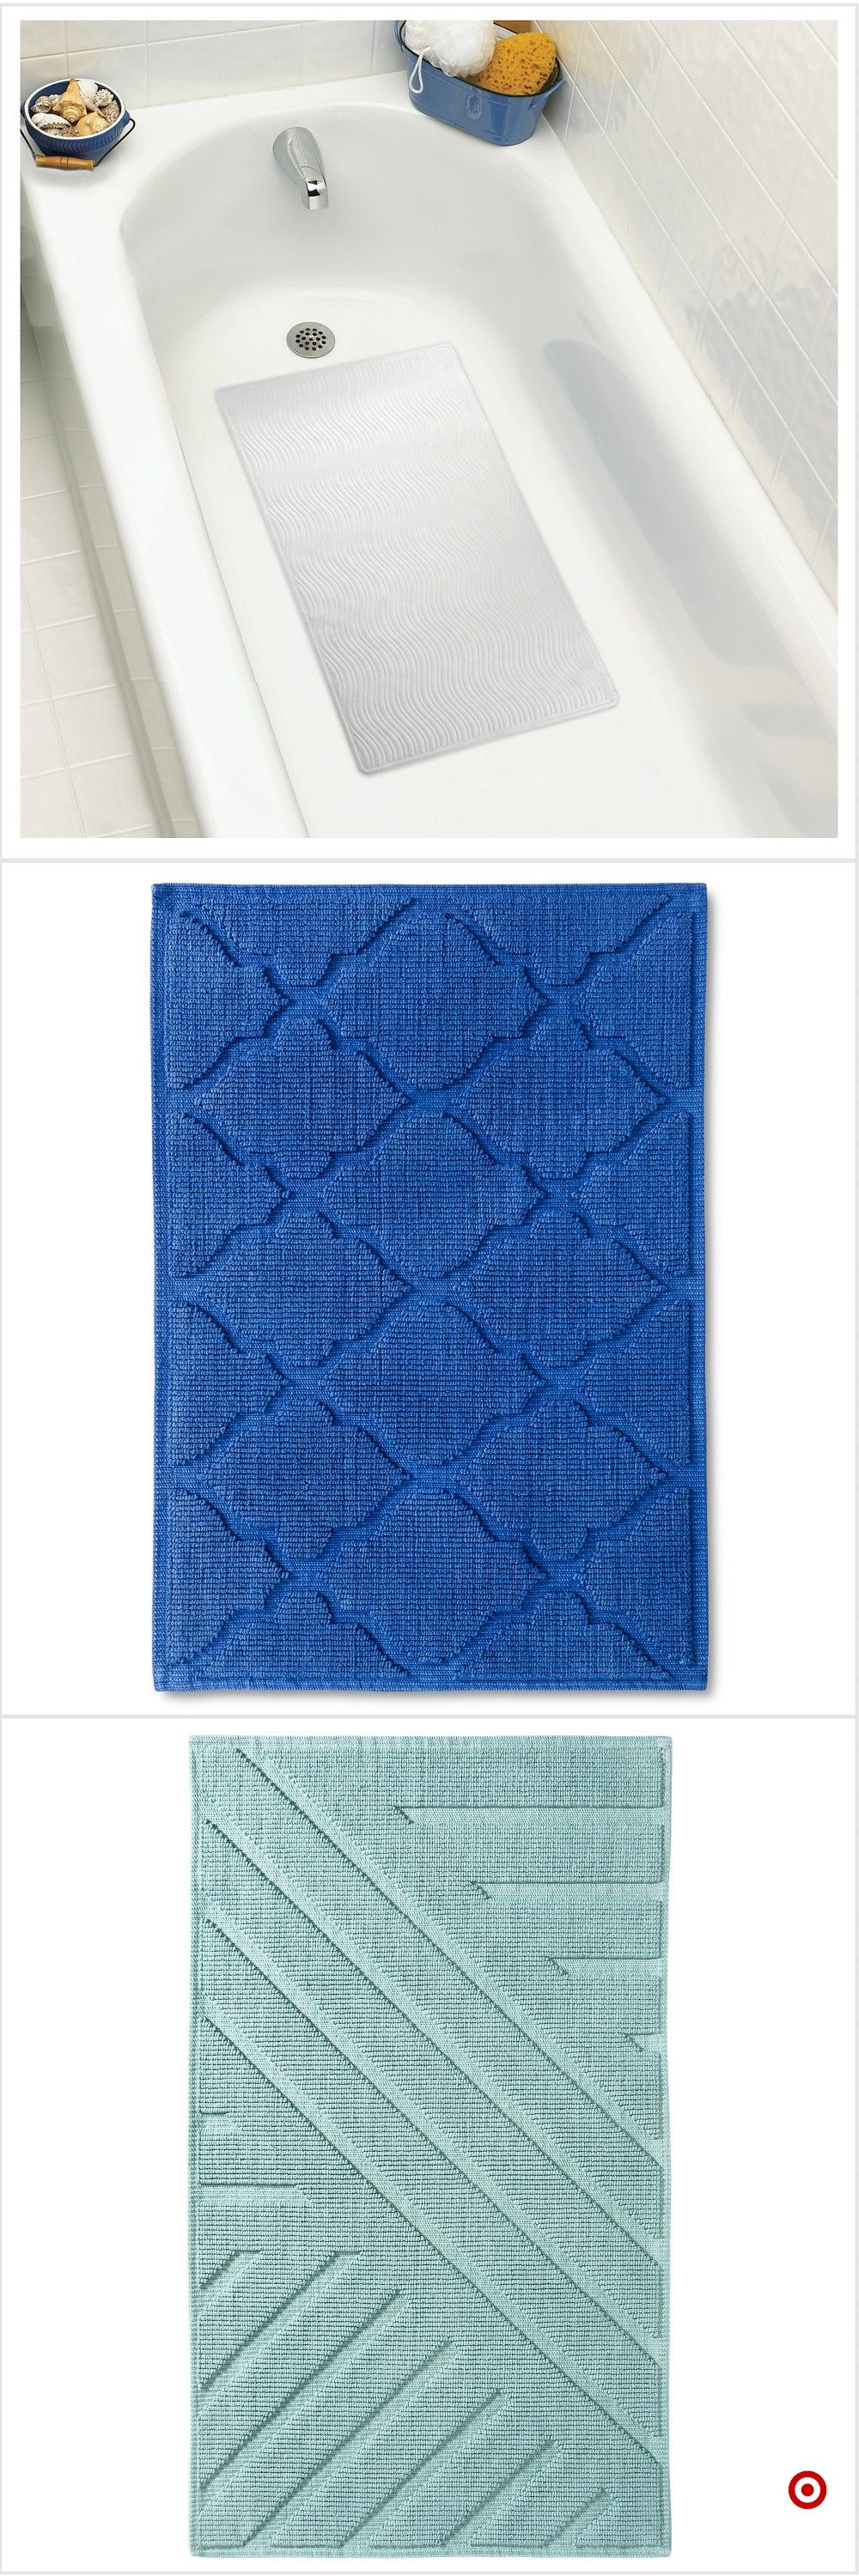 Shop Target For Bath Mat You Will Love At Great Low Prices